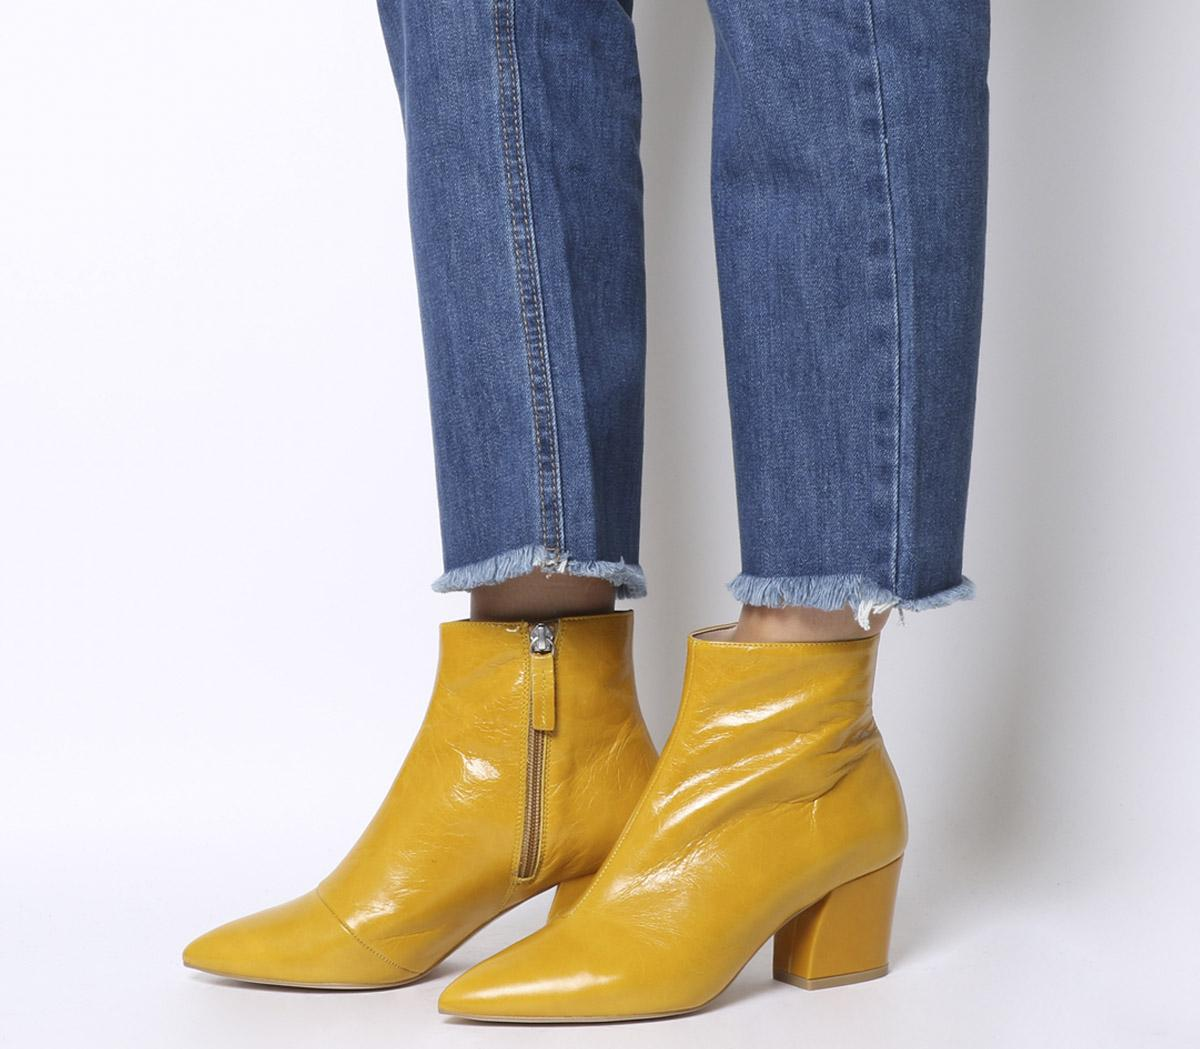 Aubergine Curved Heel Ankle Boots